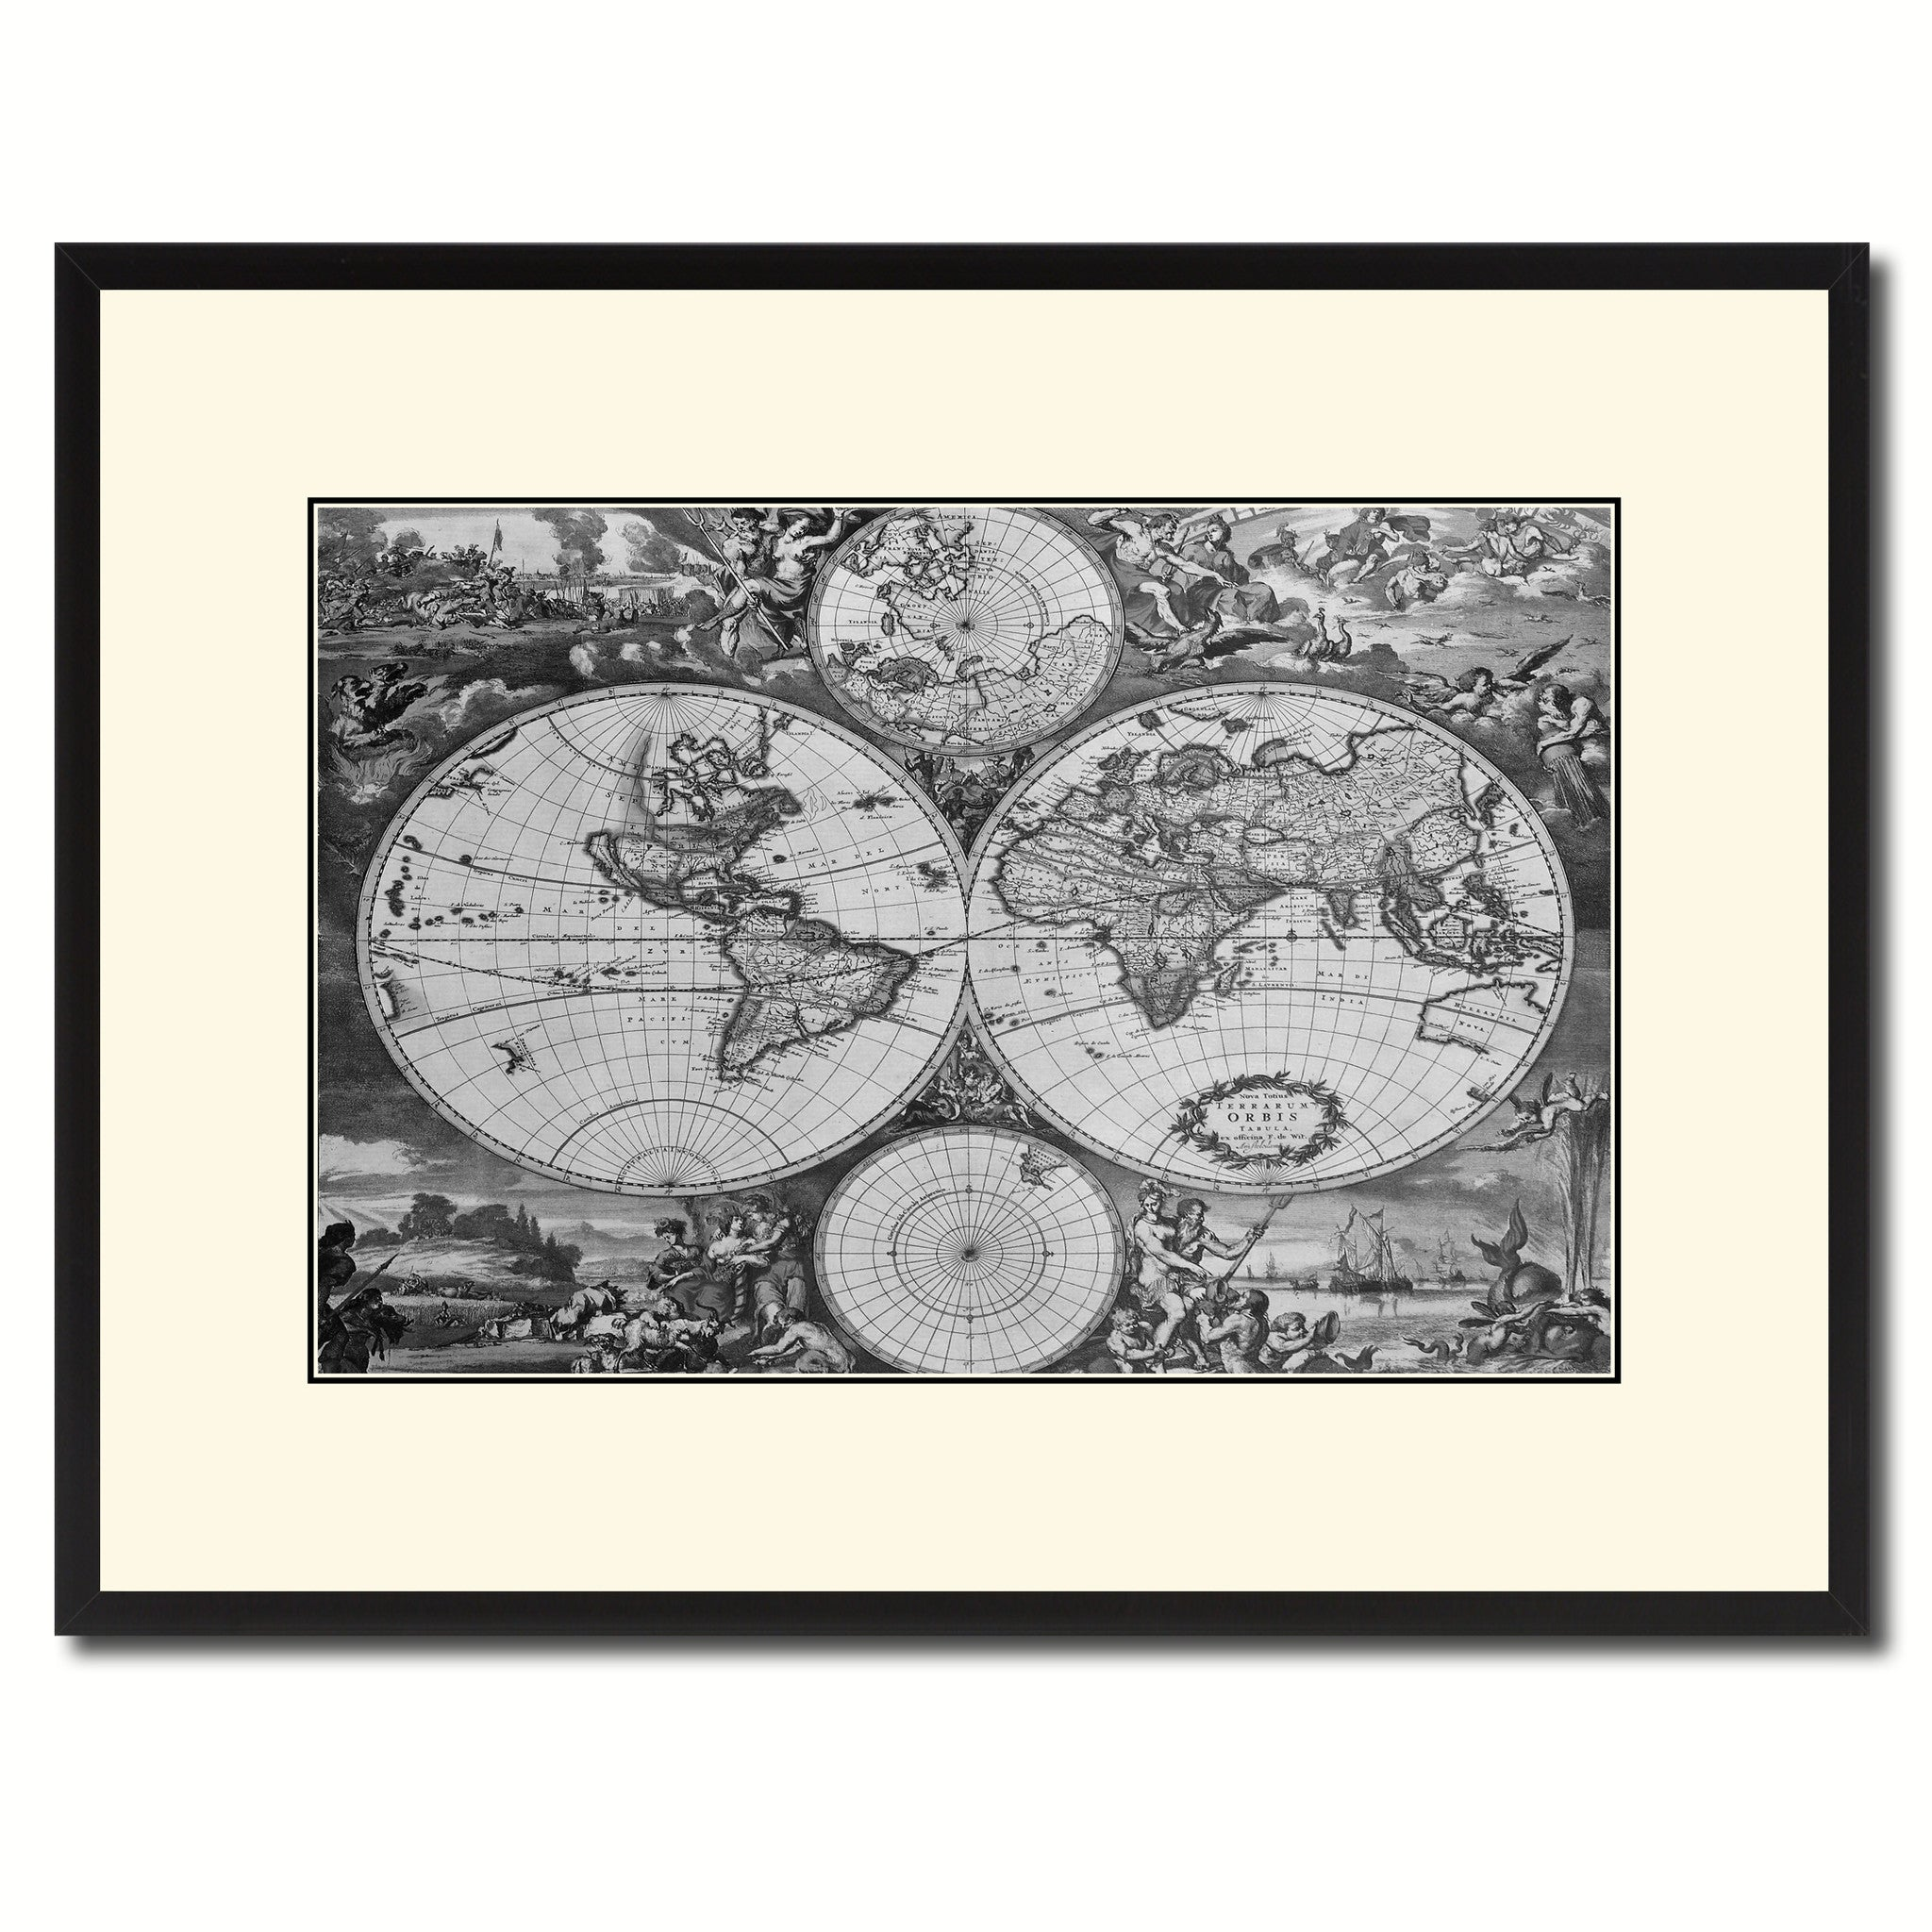 World hemispheres vintage bw map home decor wall art bedroom world hemispheres vintage bw map canvas print picture frame home decor wall art gift ideas gumiabroncs Choice Image